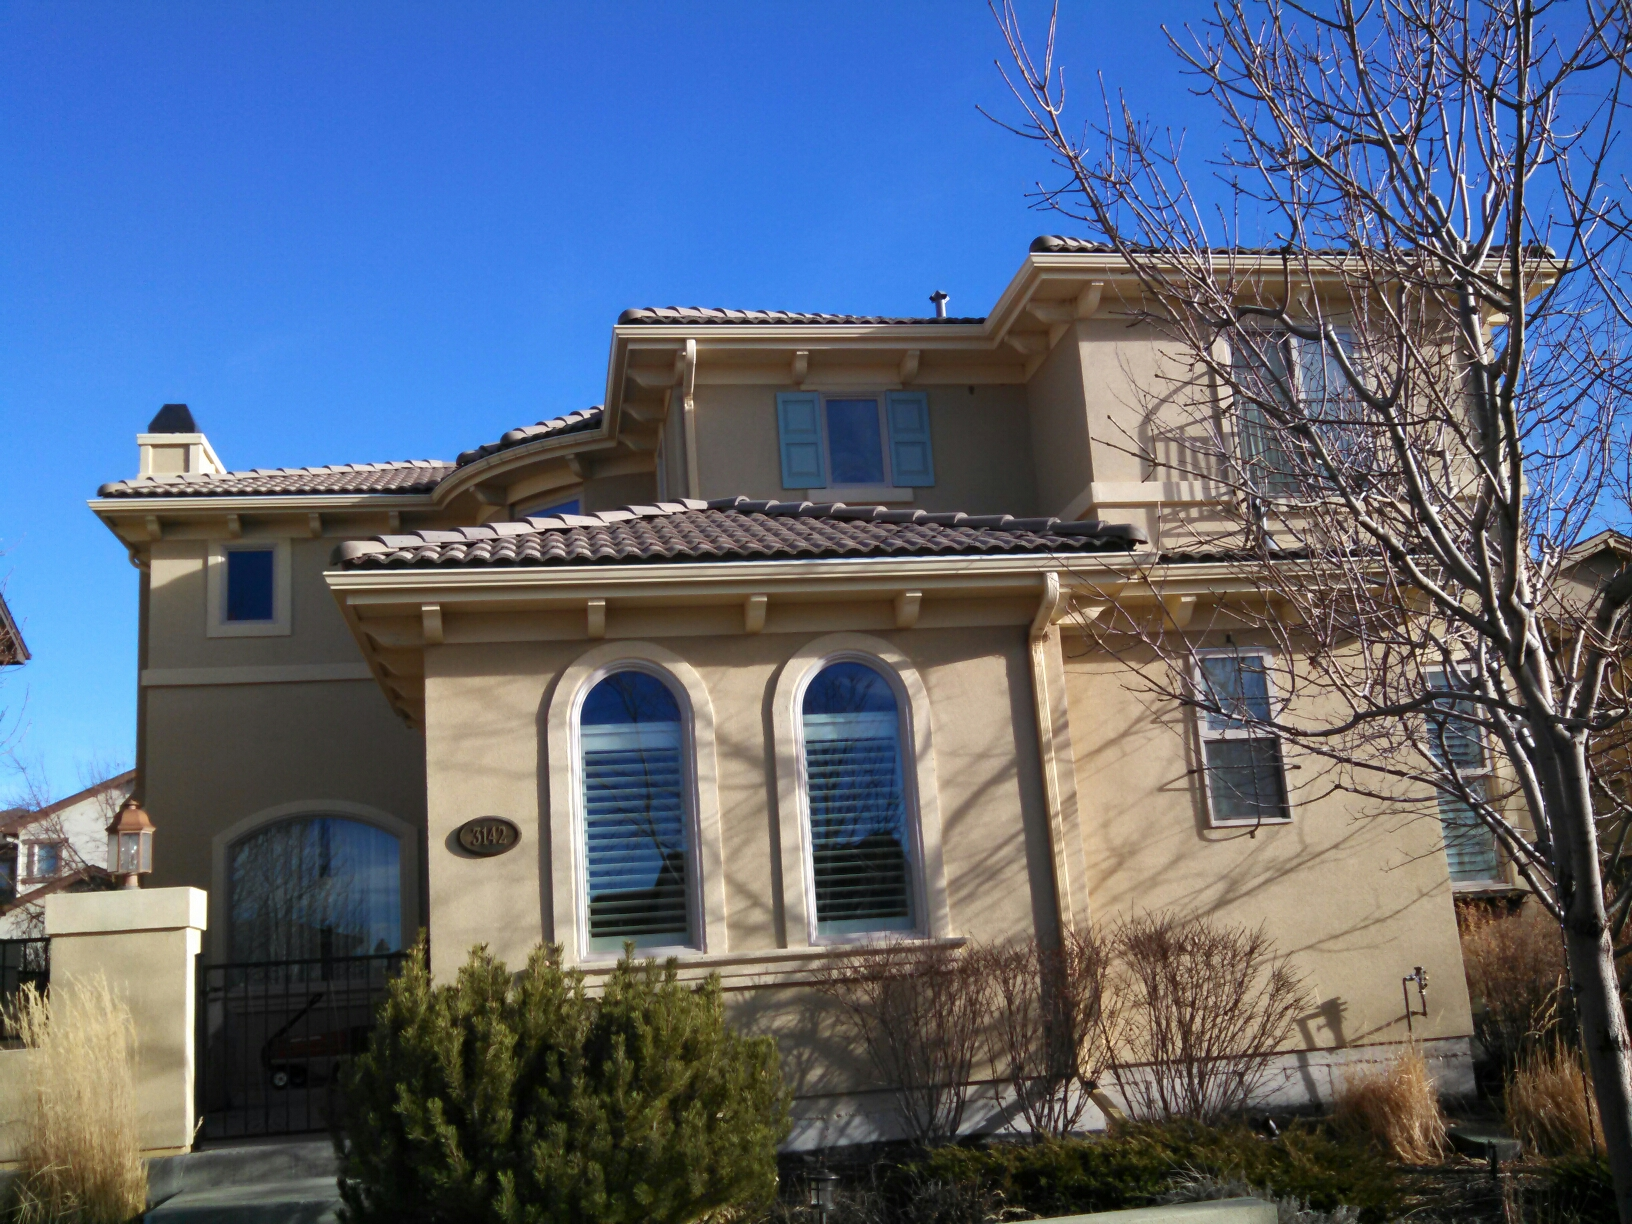 Denver, CO - Completely enjoyable working with homeowners on a regular basis. Thank you for selecting Horizon Services for all your heating, cooling, air cleaning and garage door needs.